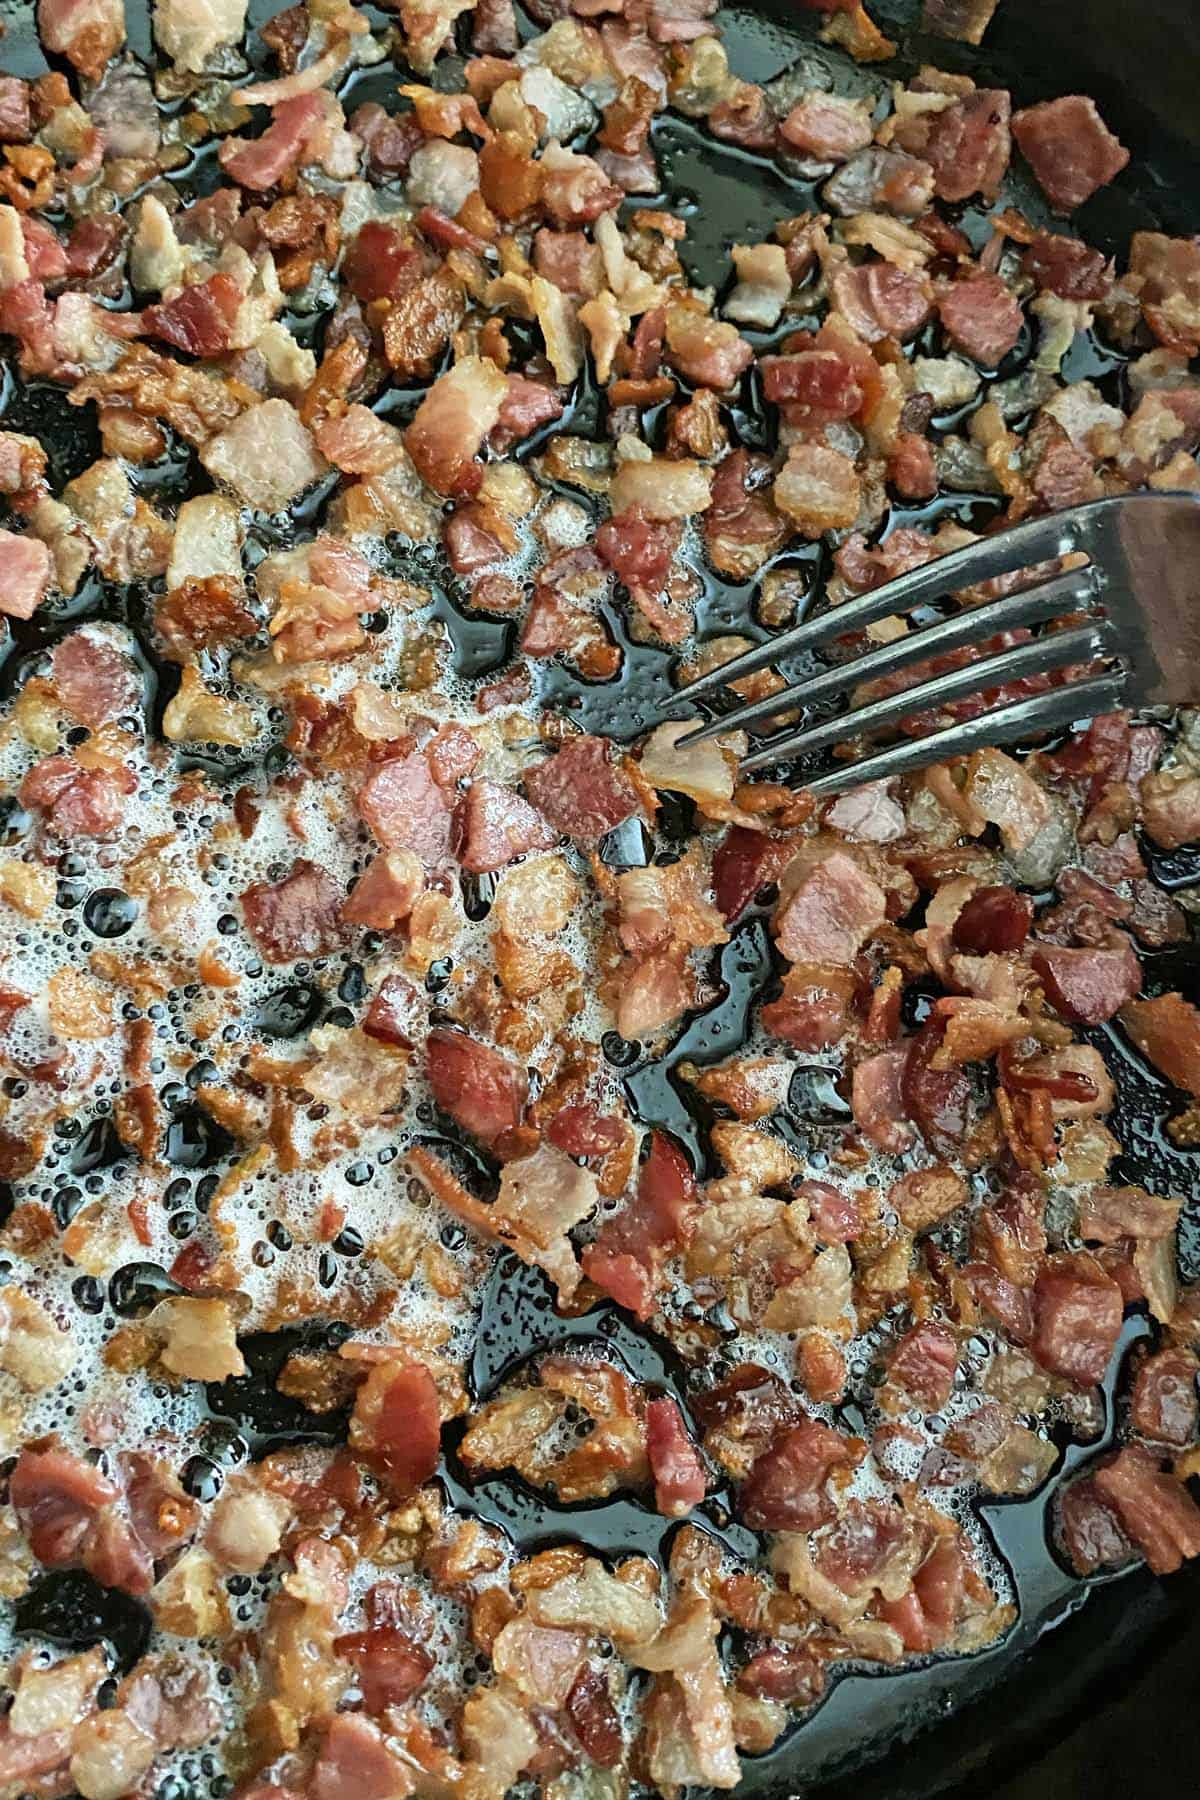 Chopped bacon frying in a large skillet. The bacon bits are browned and almost done cooking.